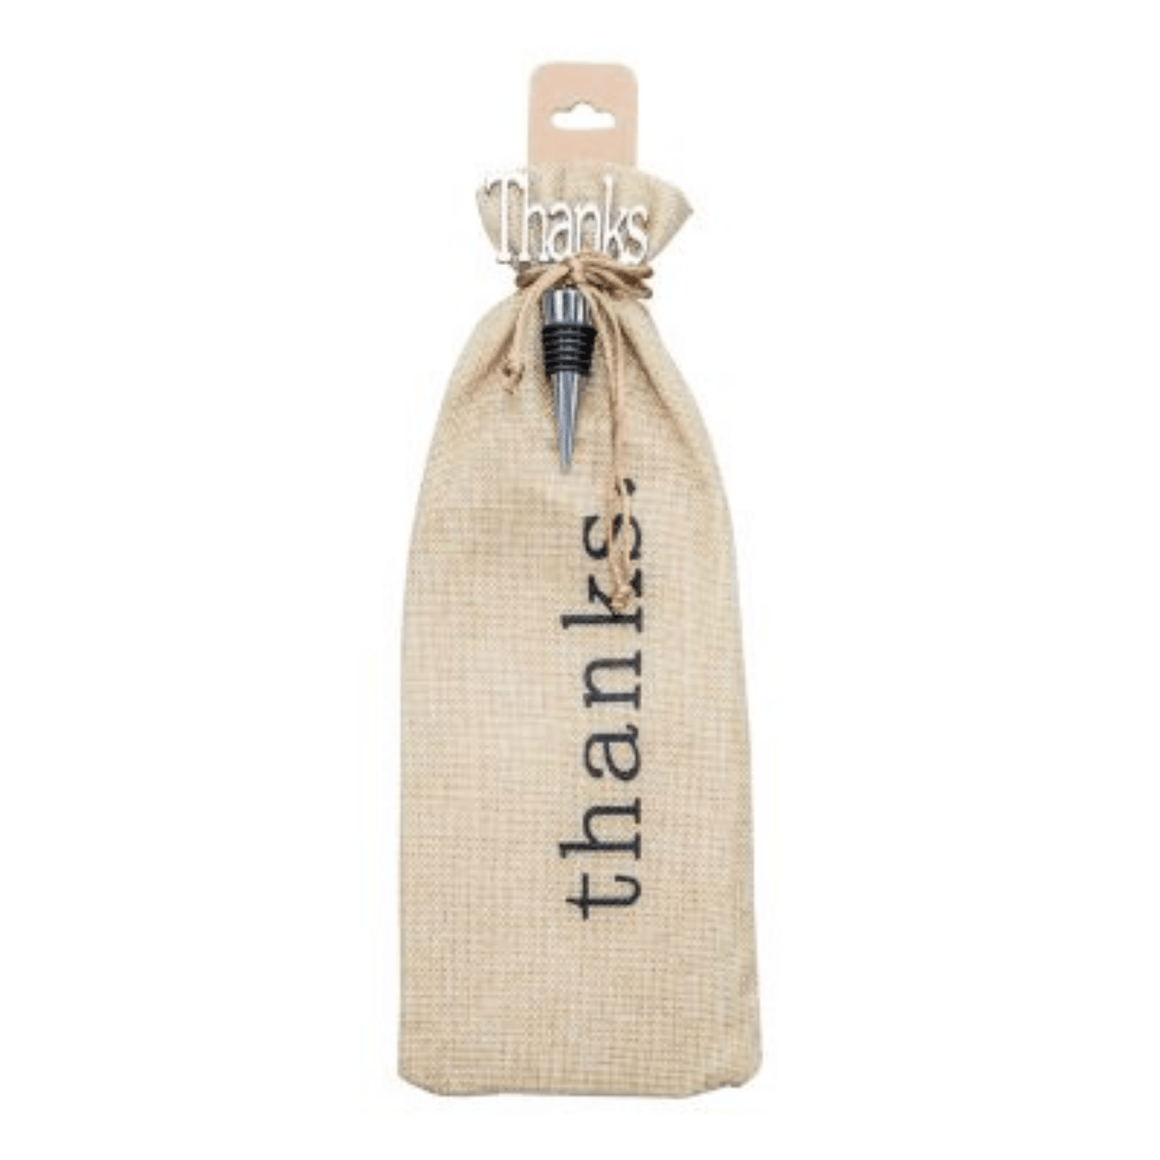 'THANKS' WINE BOTTLE STOPPER & BURLAP GIFT BAG - Bowerbird on Argyle